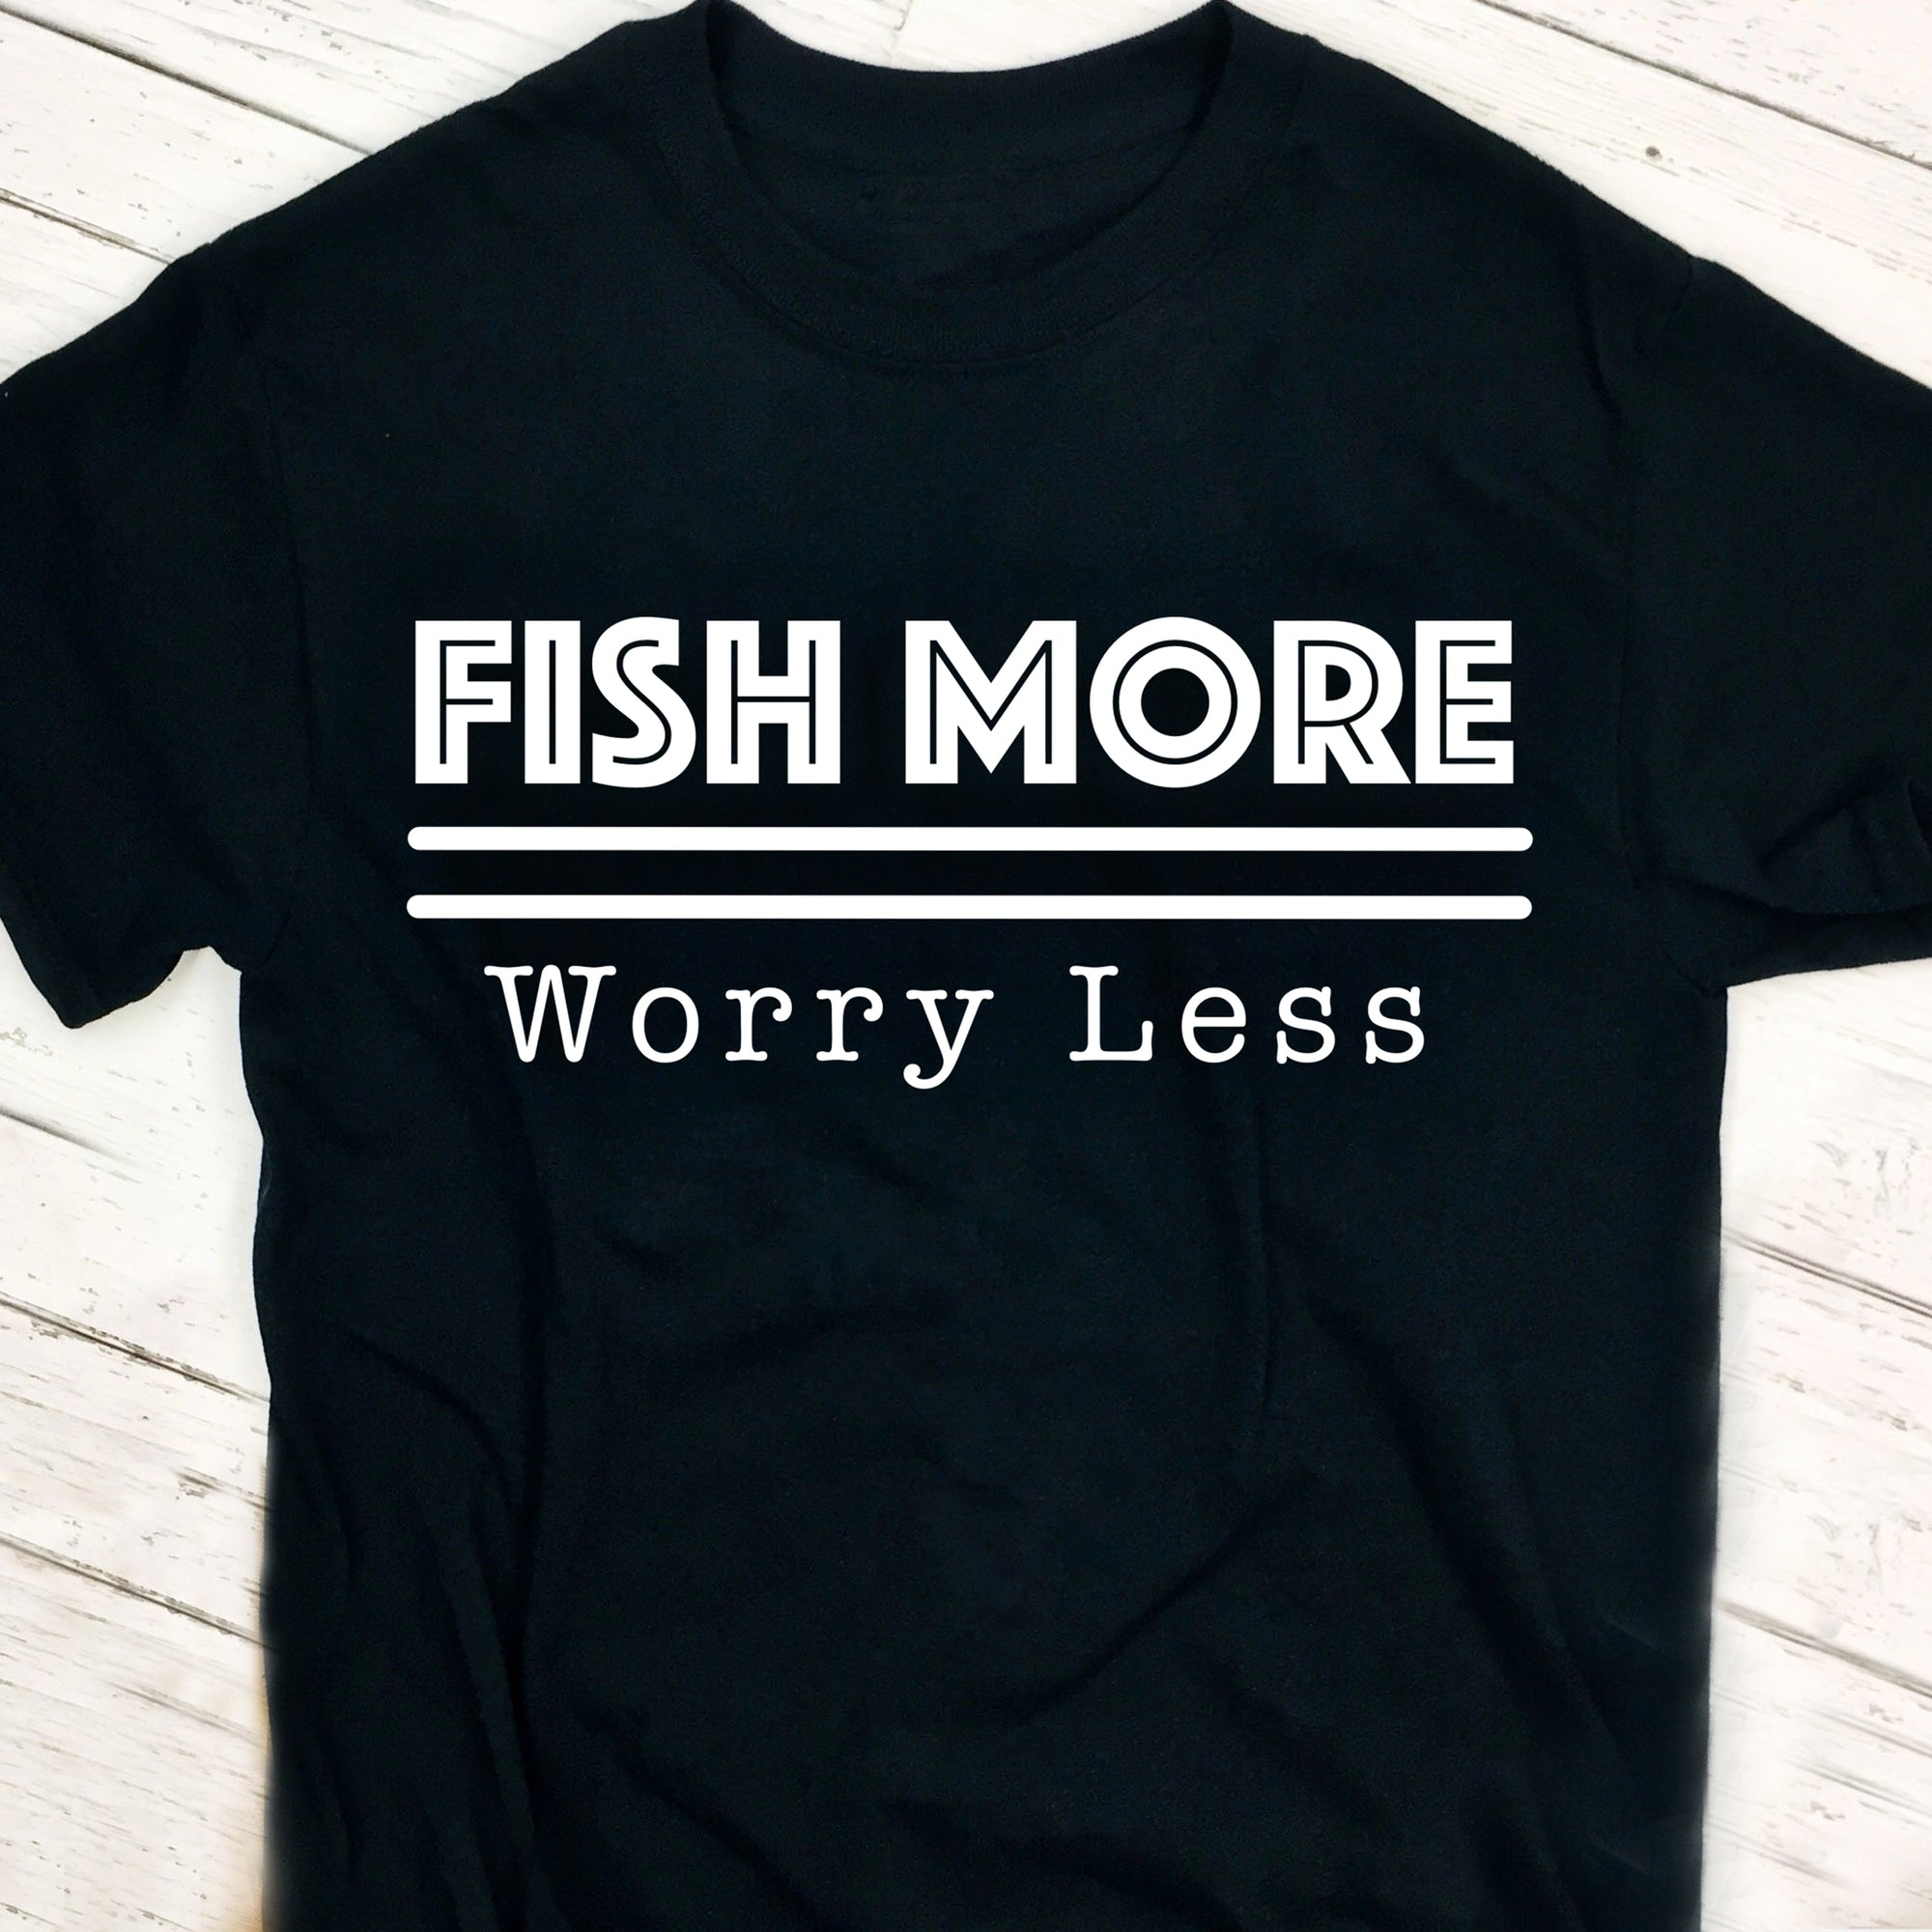 Fishing Quote SVG File, Fish More Worry Less SVG Cut File, Fishing Saying SVG File, Fisherman SVG, Fishing Shirt SVG